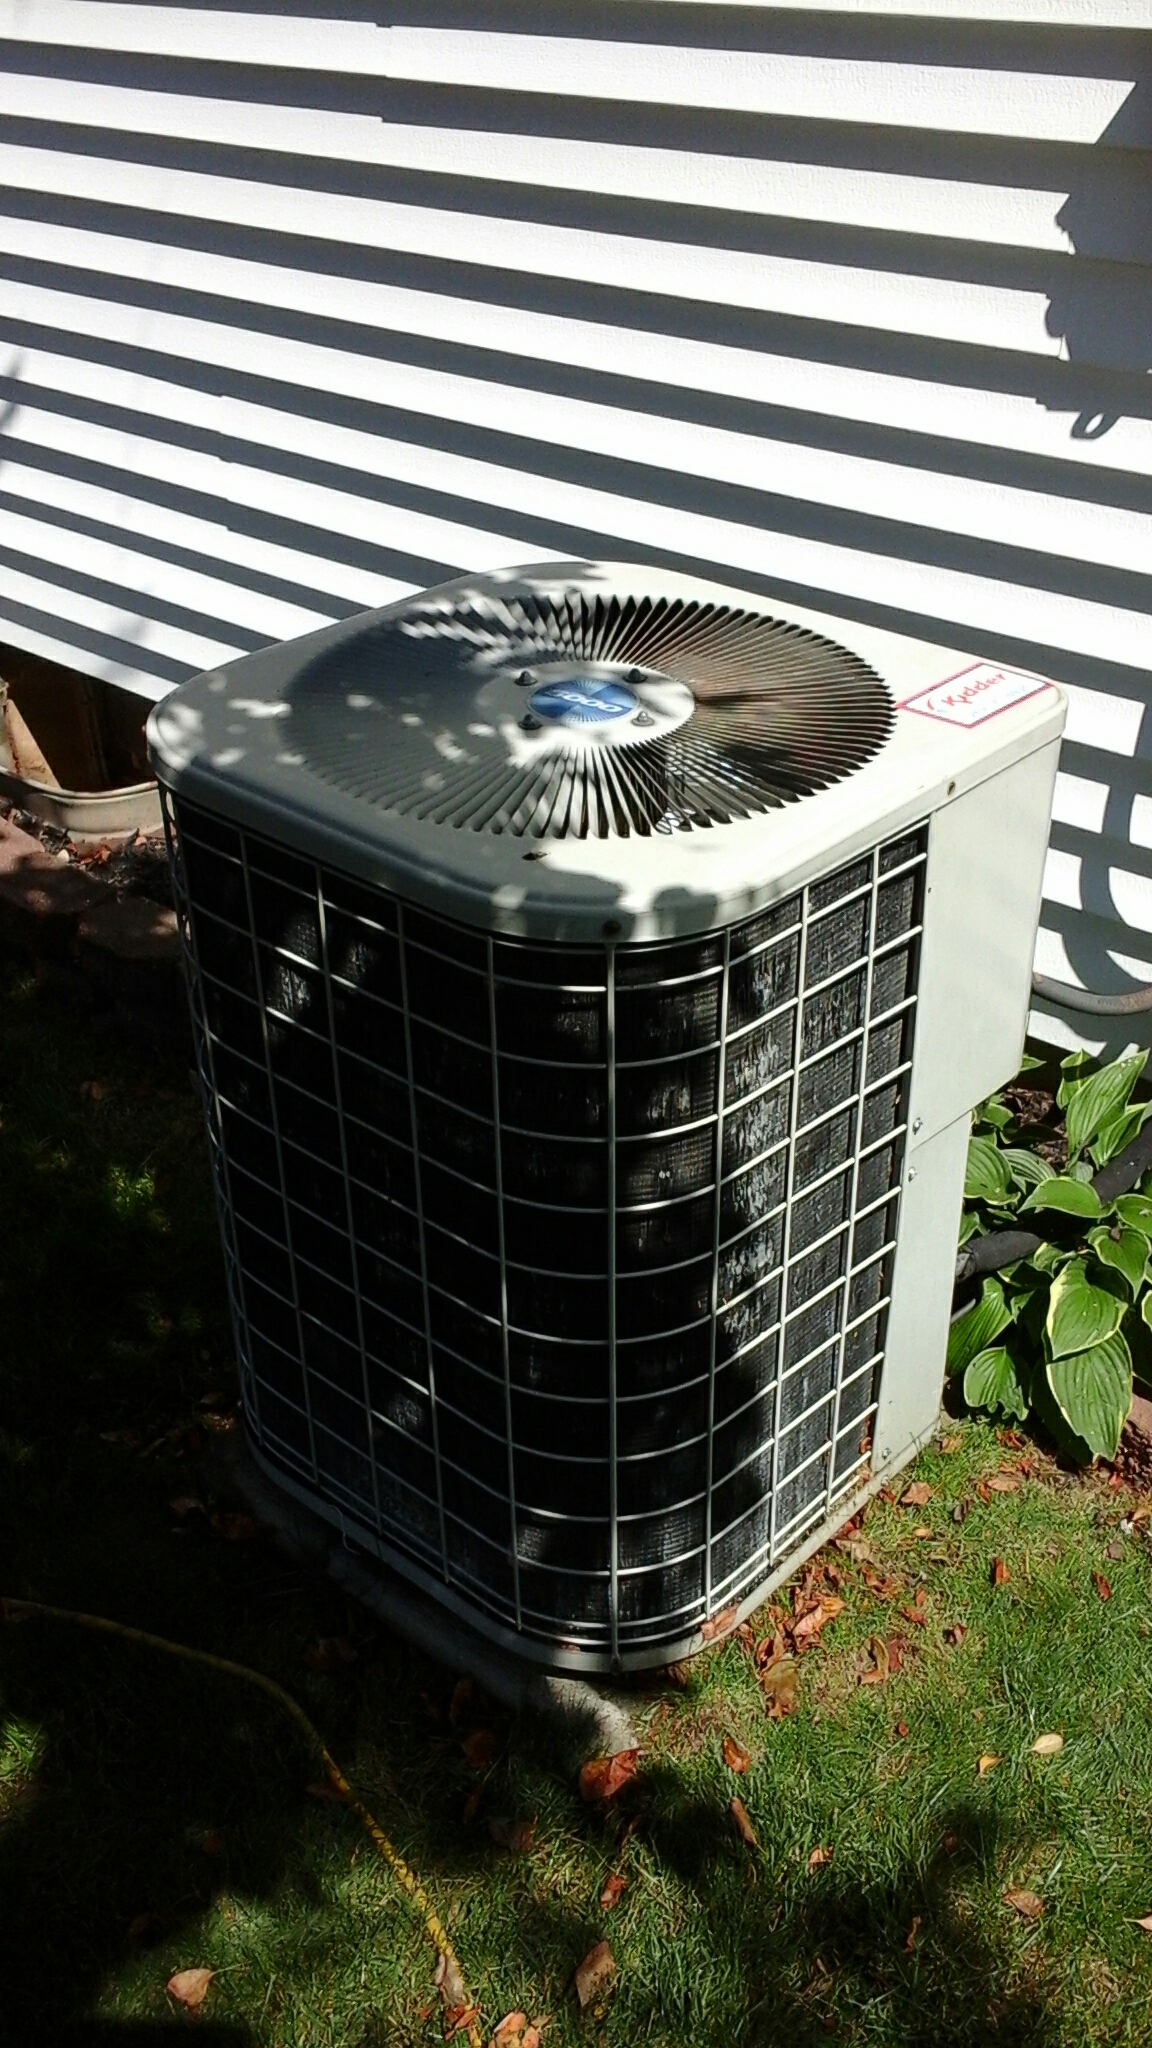 Concord, MI - Performed a precision tune-up on a international air conditioning unit with R - 22 refrigerant and replaced the capacitor.